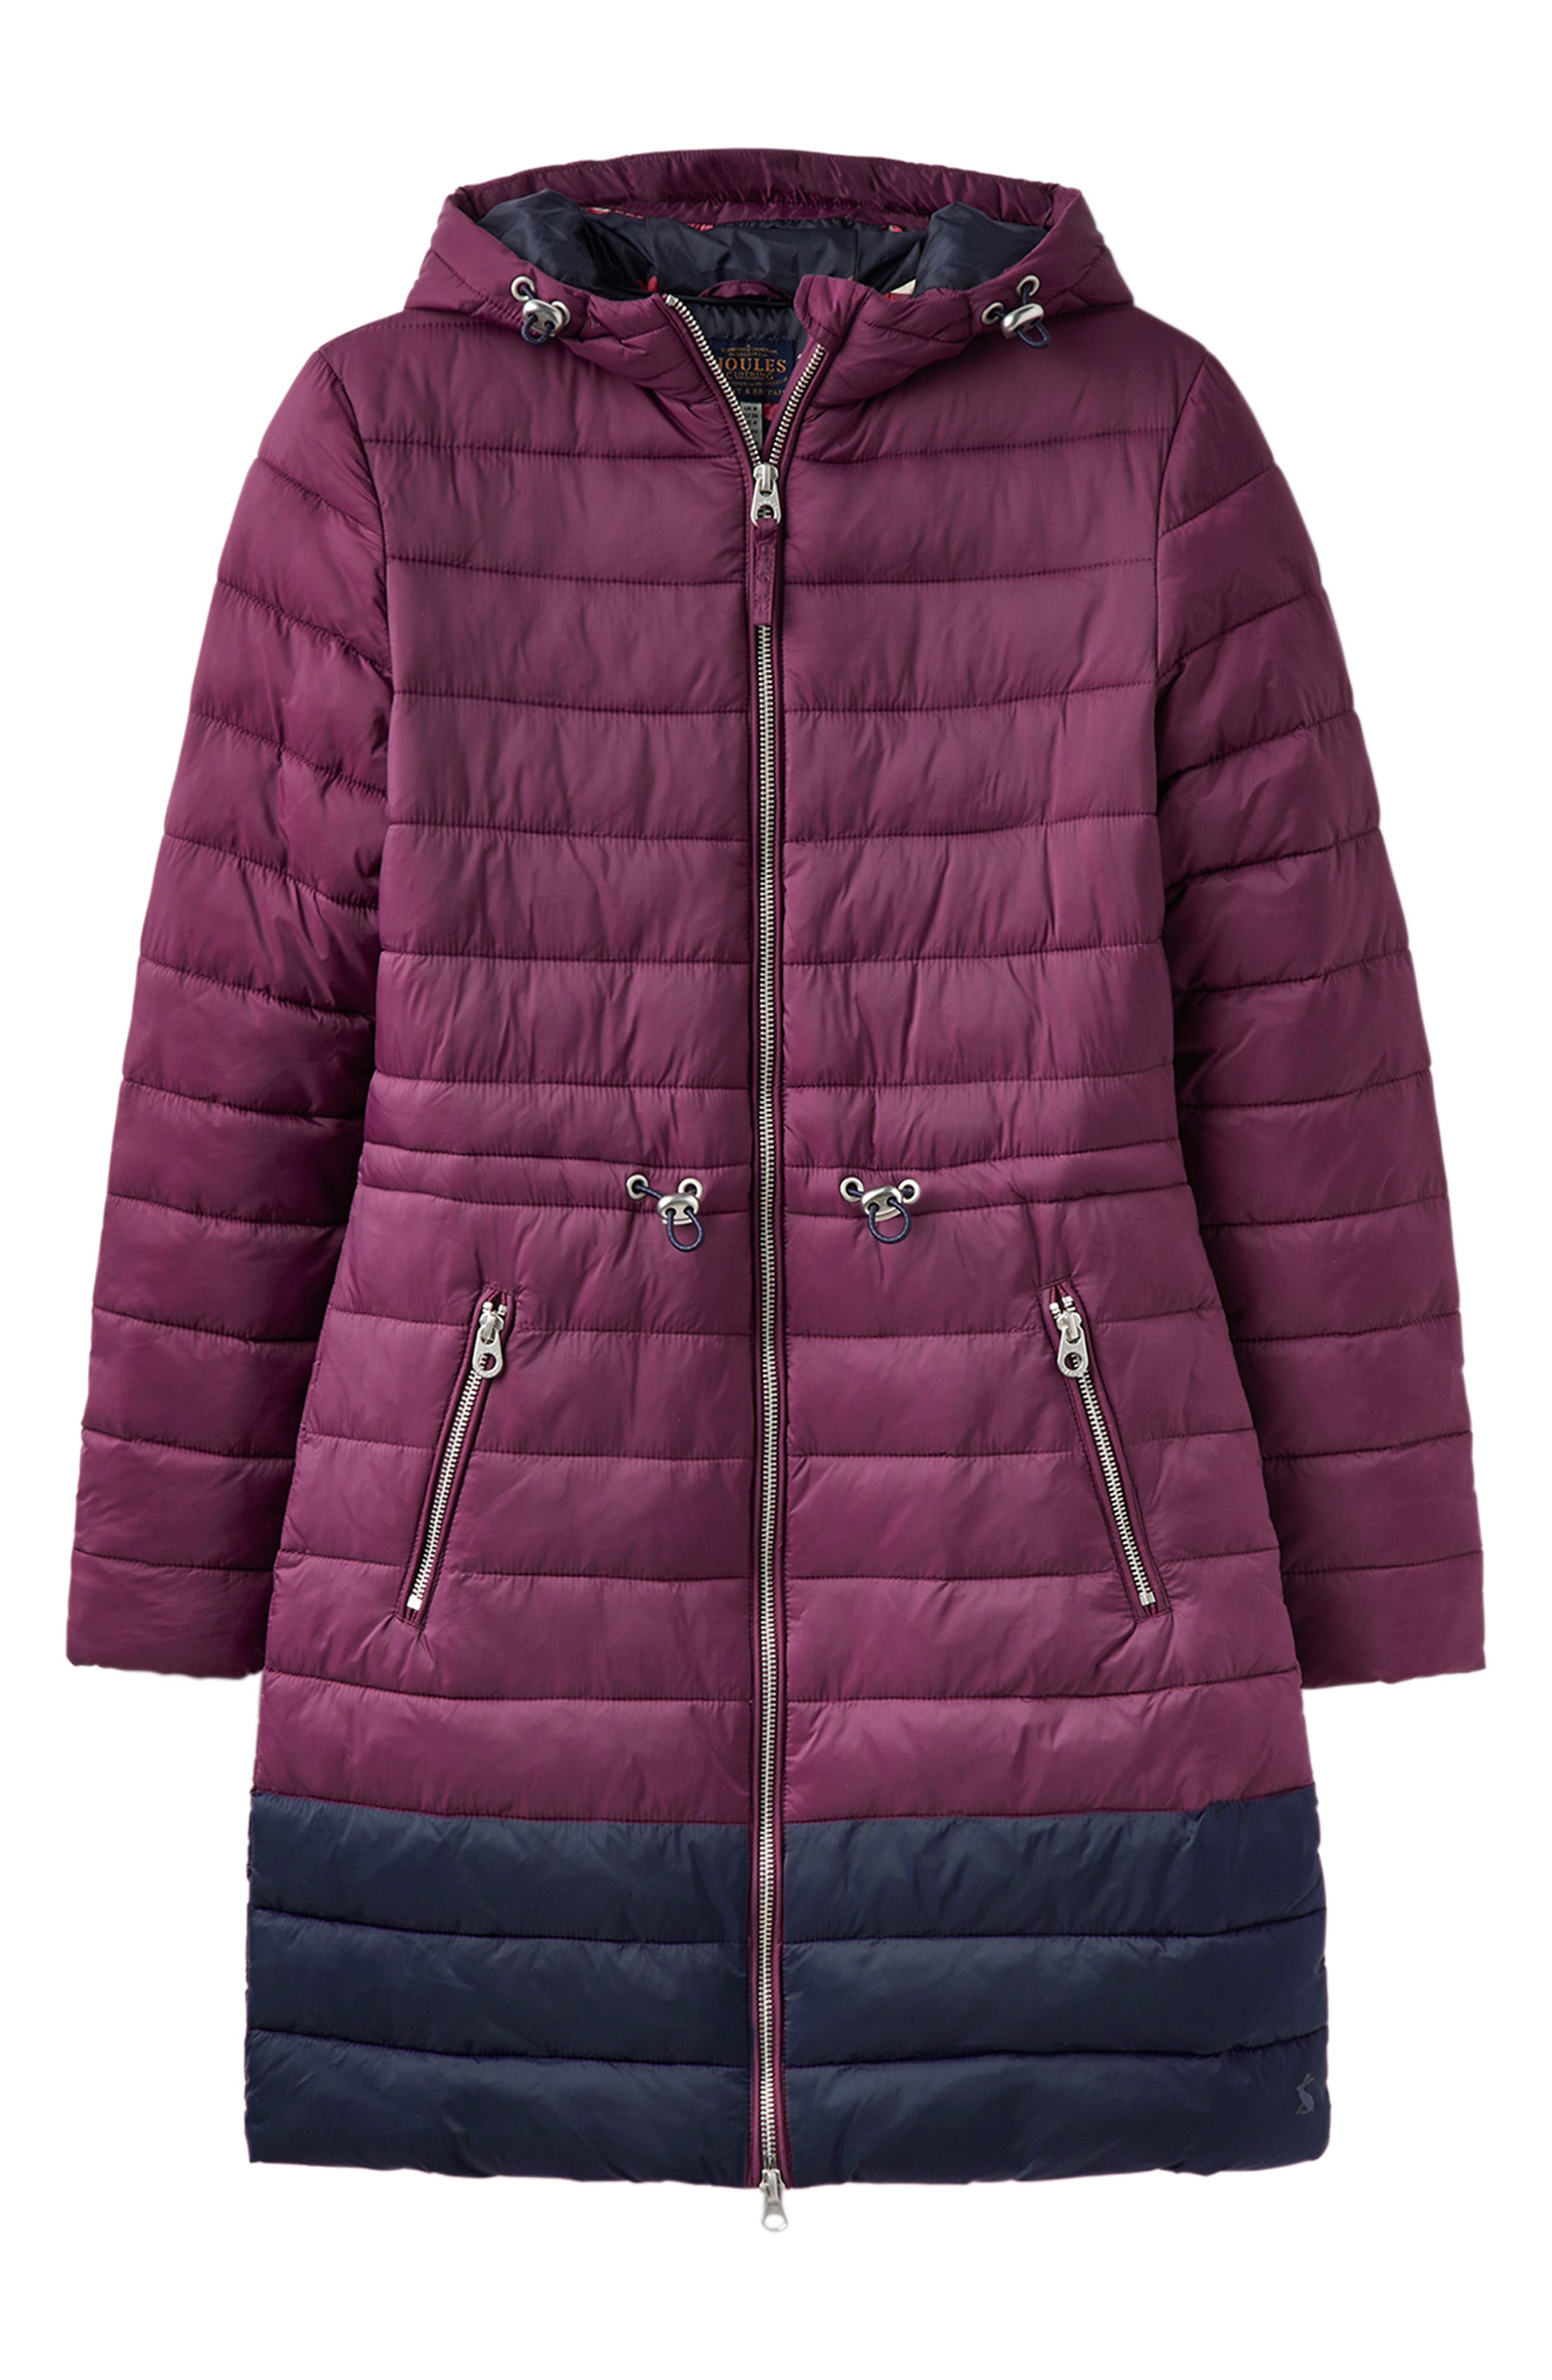 JOULES,                             Heathcote Two-Tone Puffer Jacket,                             Alternate thumbnail 6, color,                             BURGUNDY